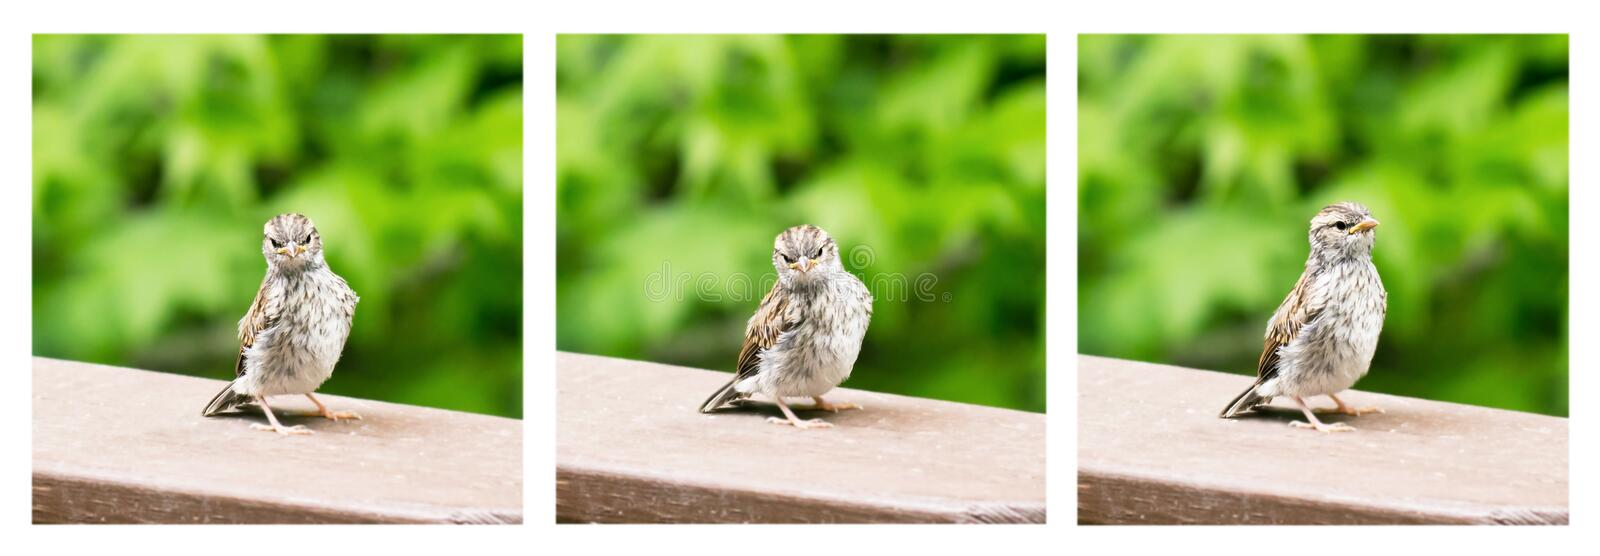 Baby sparrow expressions sequence stock image